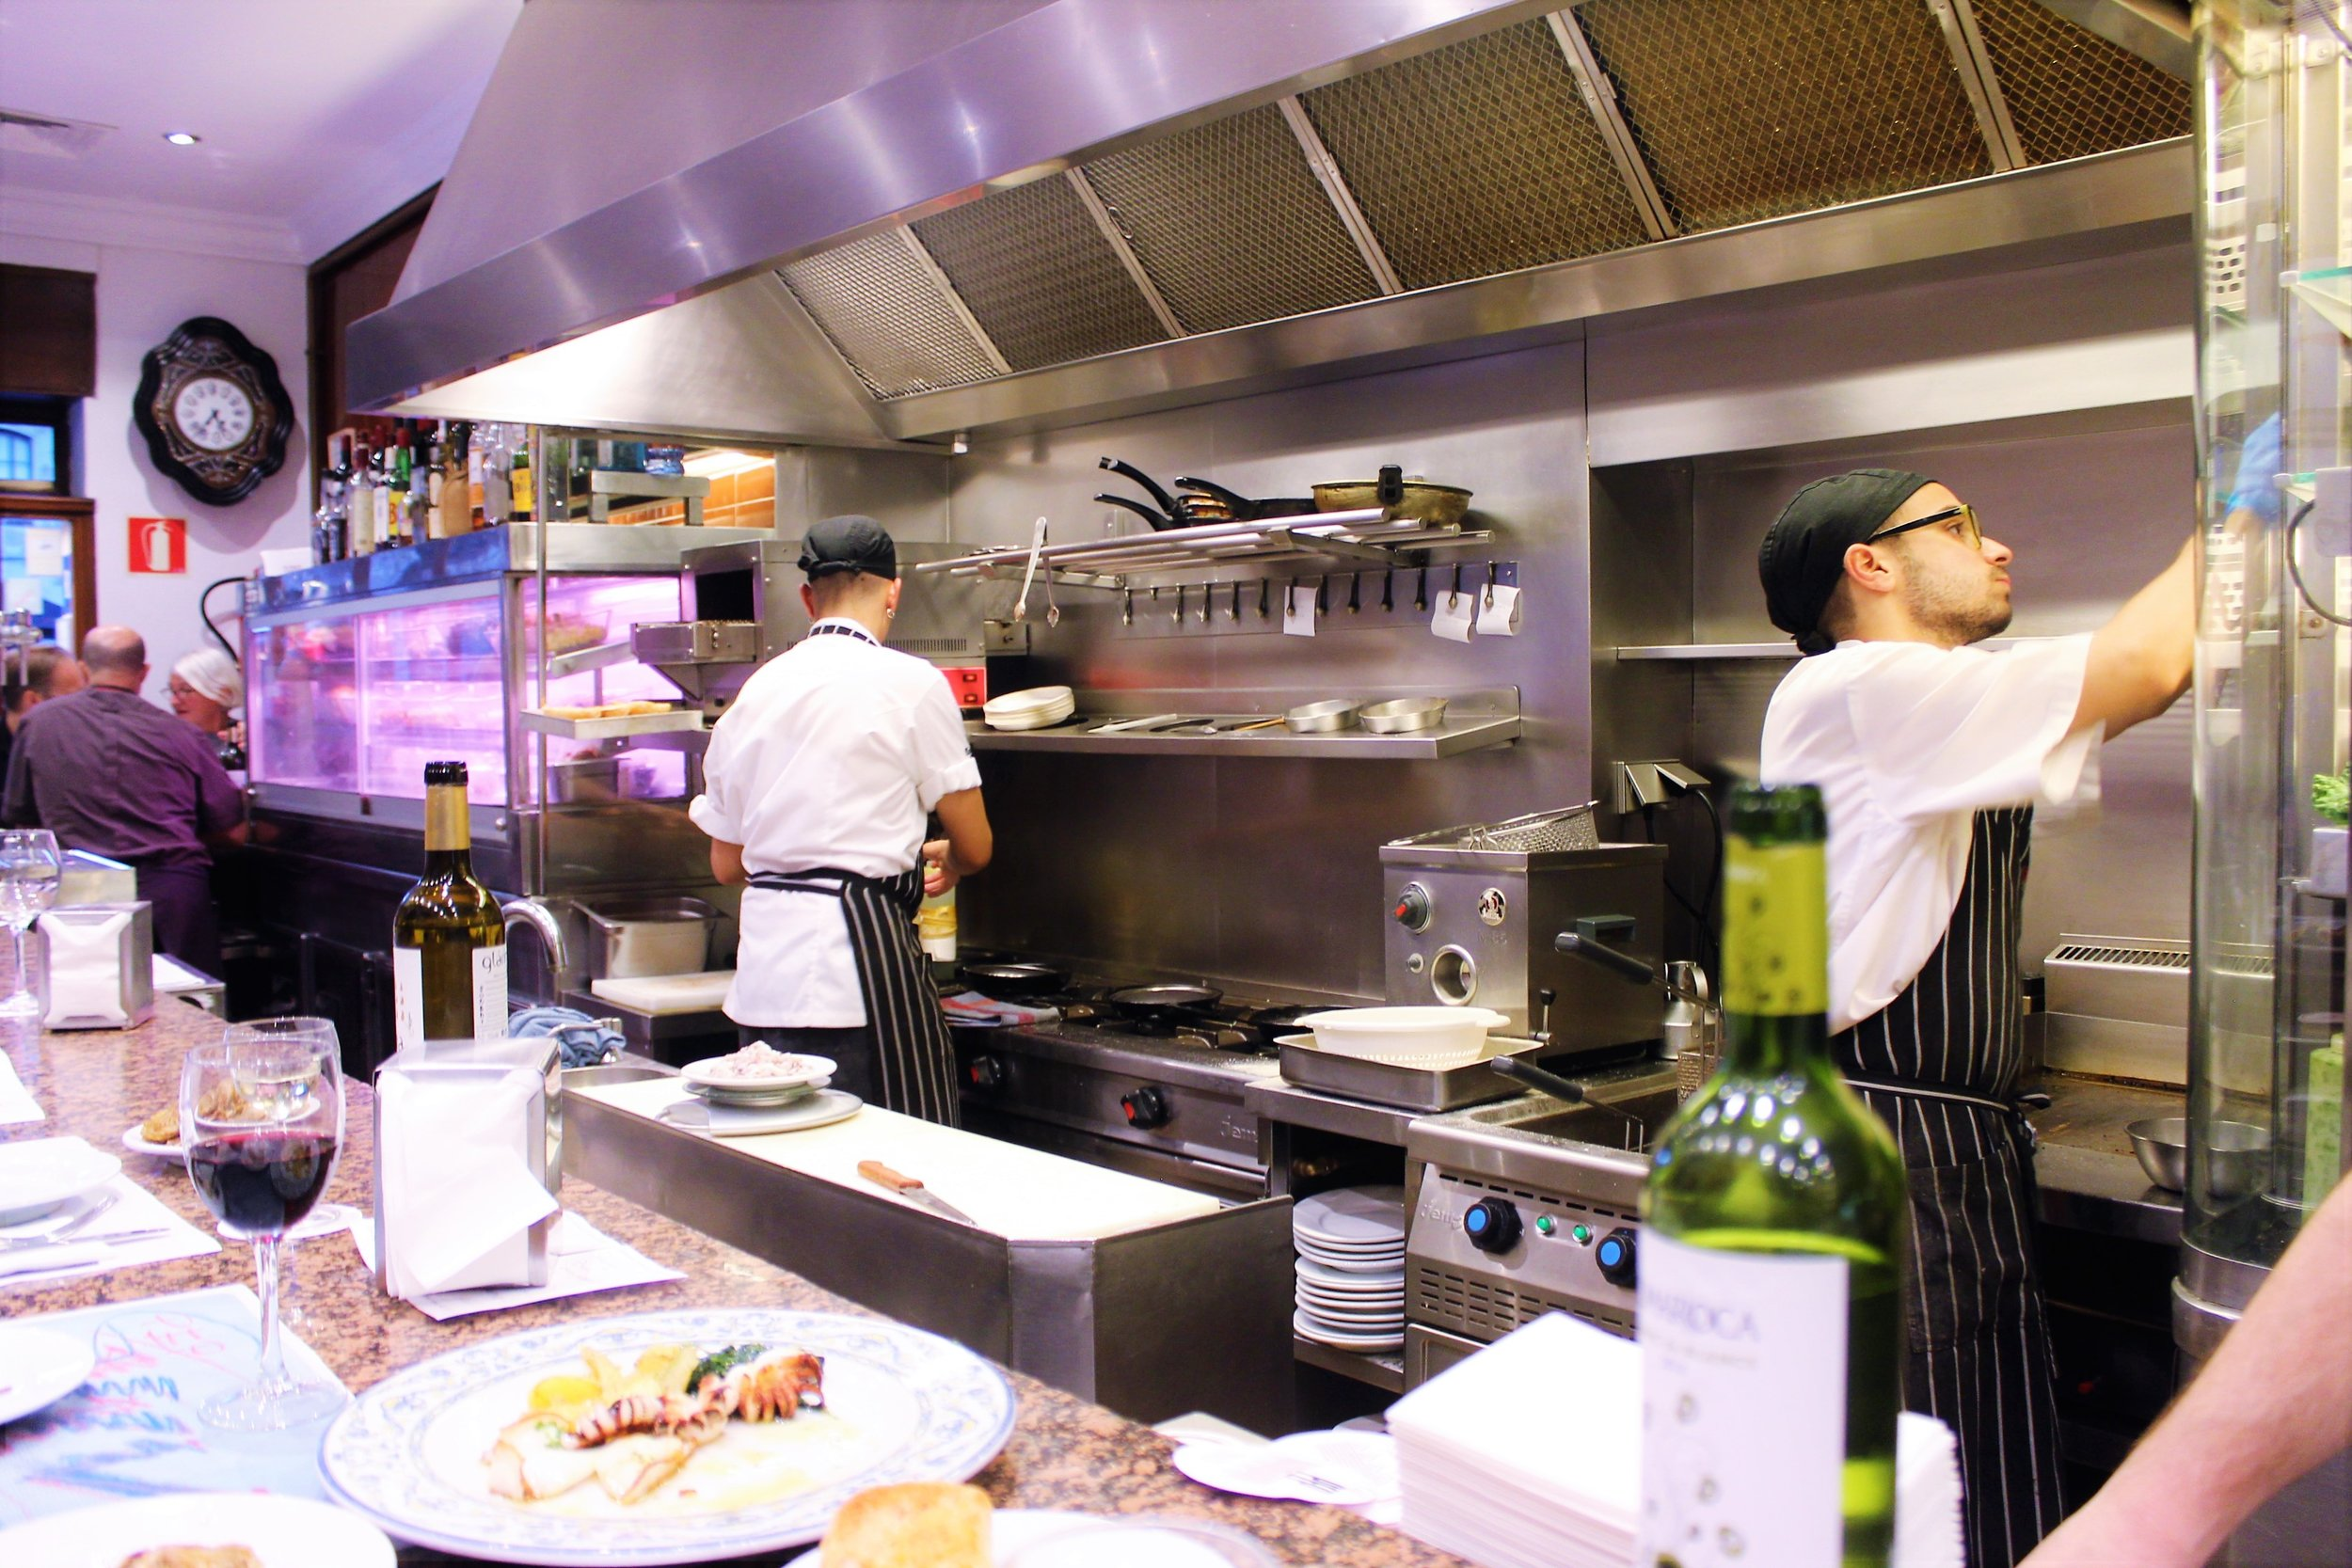 Kitchen at Cal Pep in Barcelona